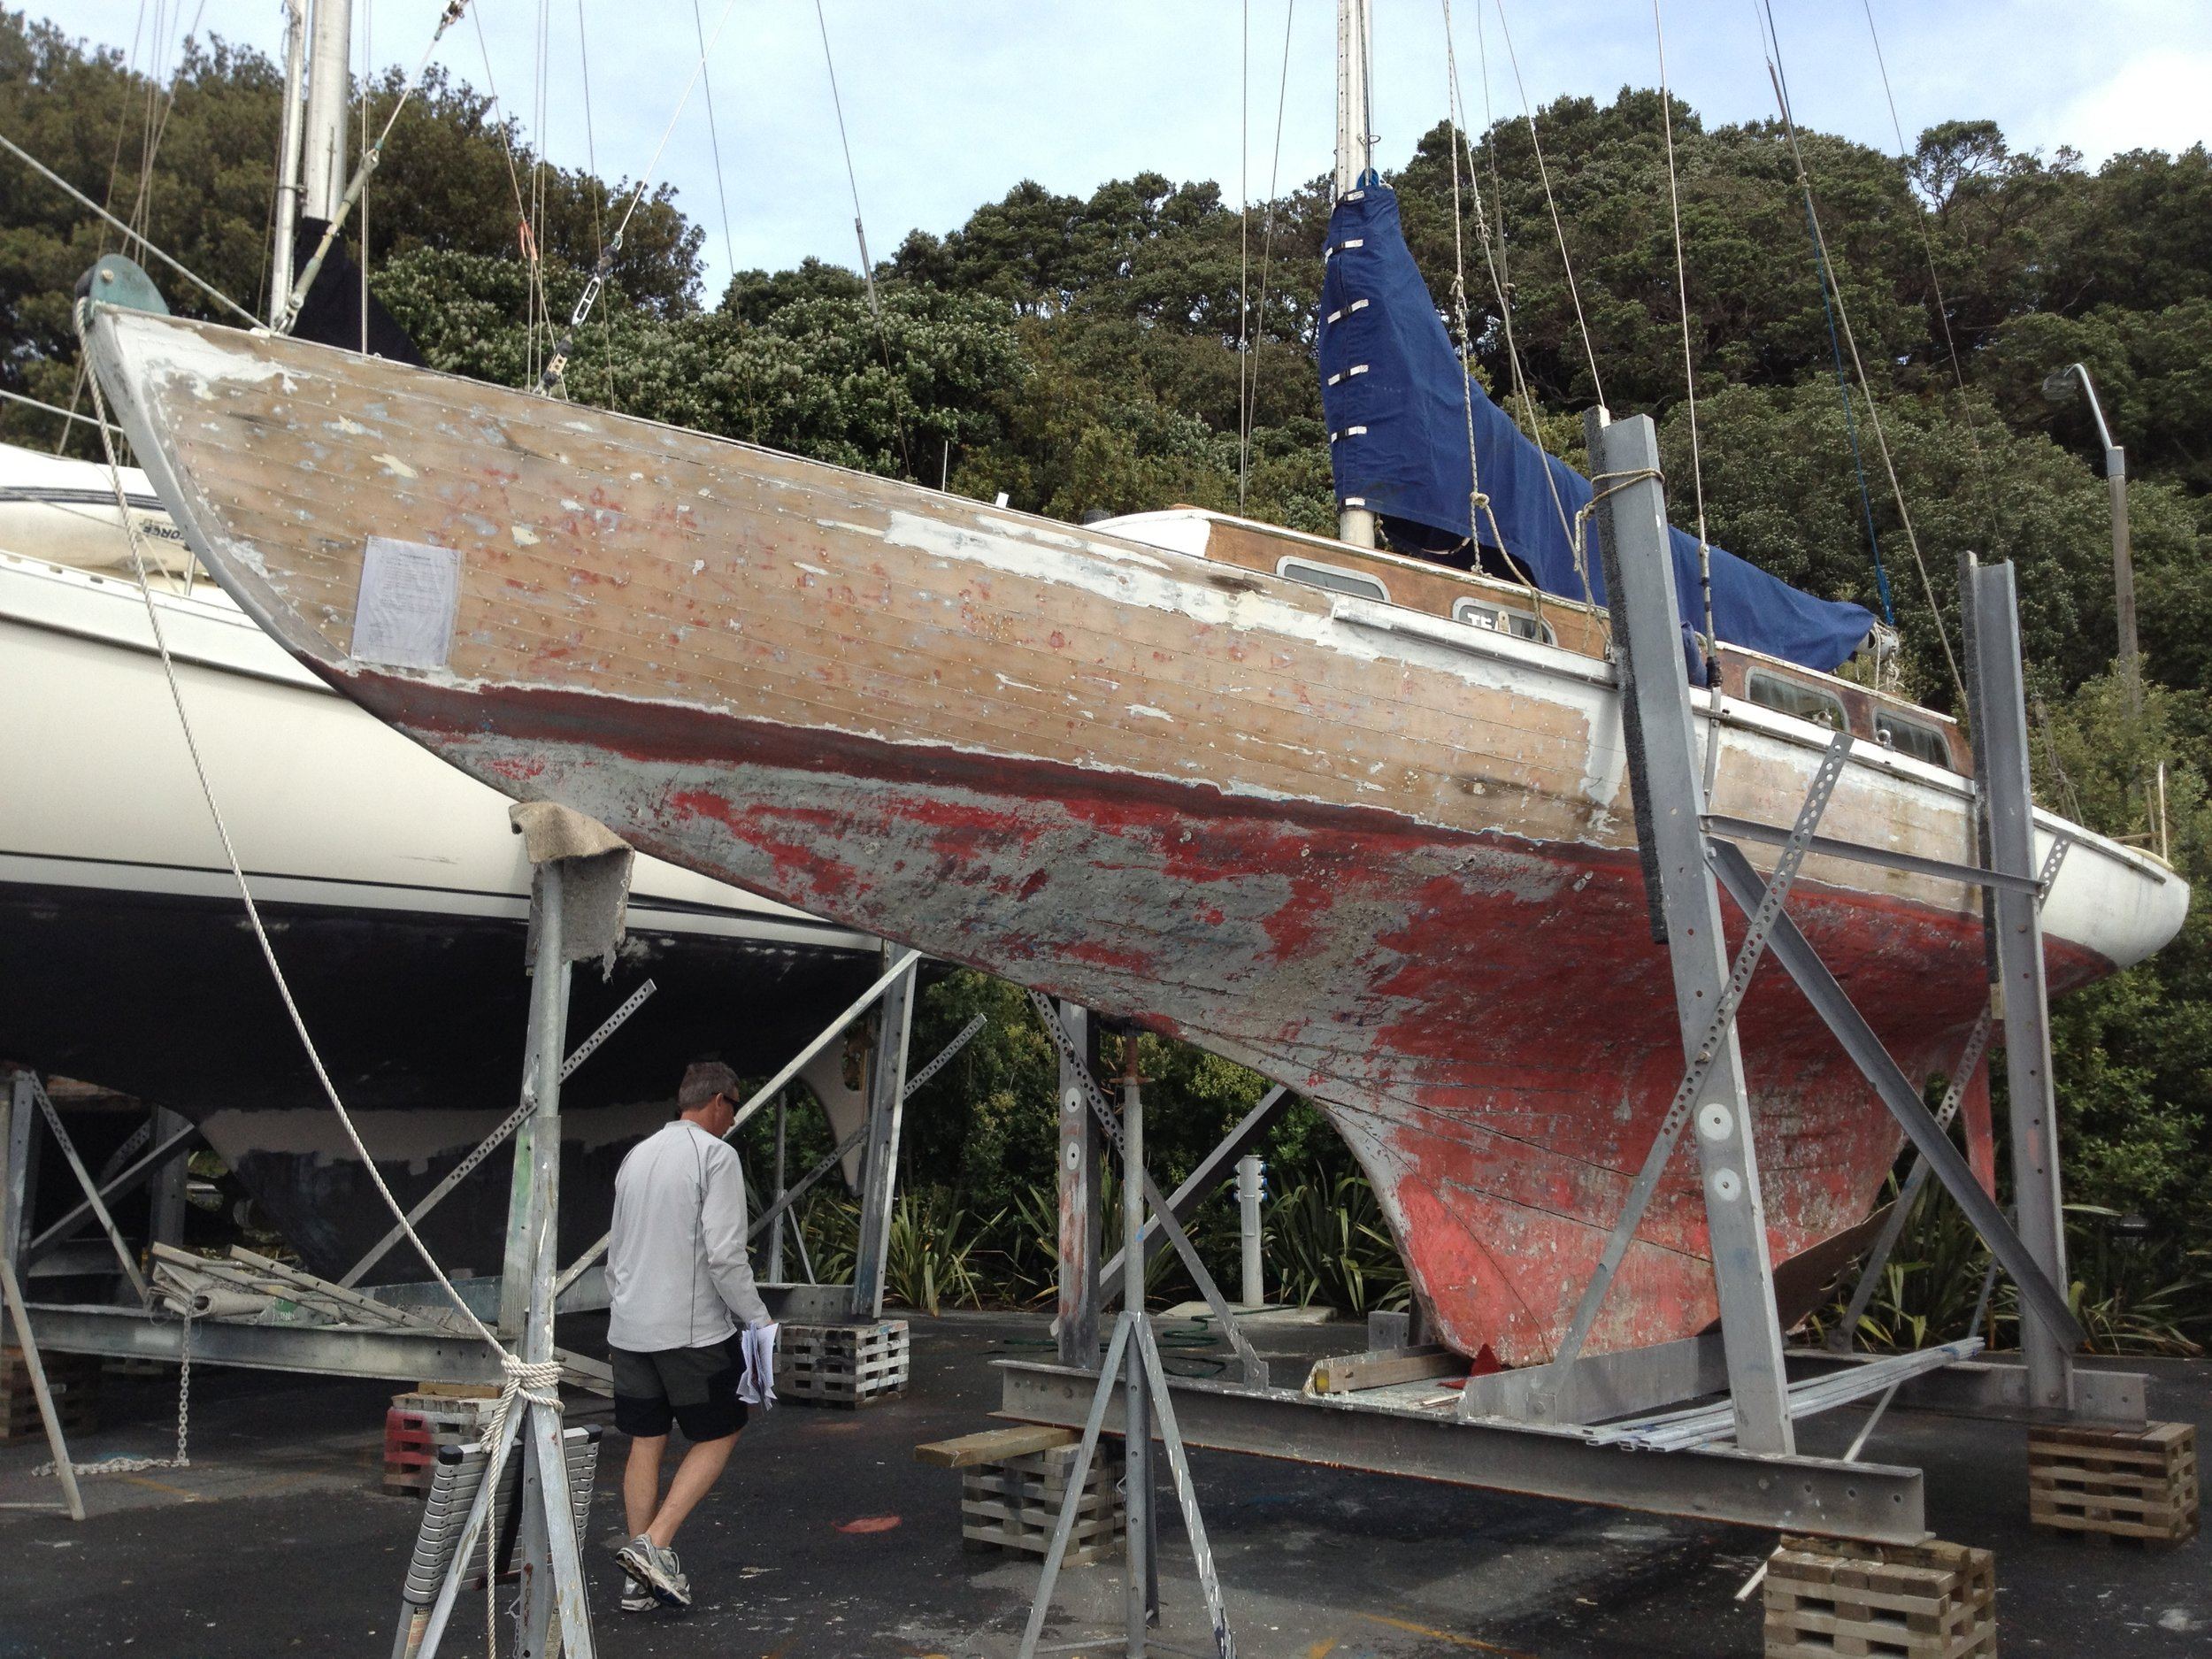 Pre-restoration Teal sits at the Orakei Marina with the Writ for removal and disposal attached to her hull.